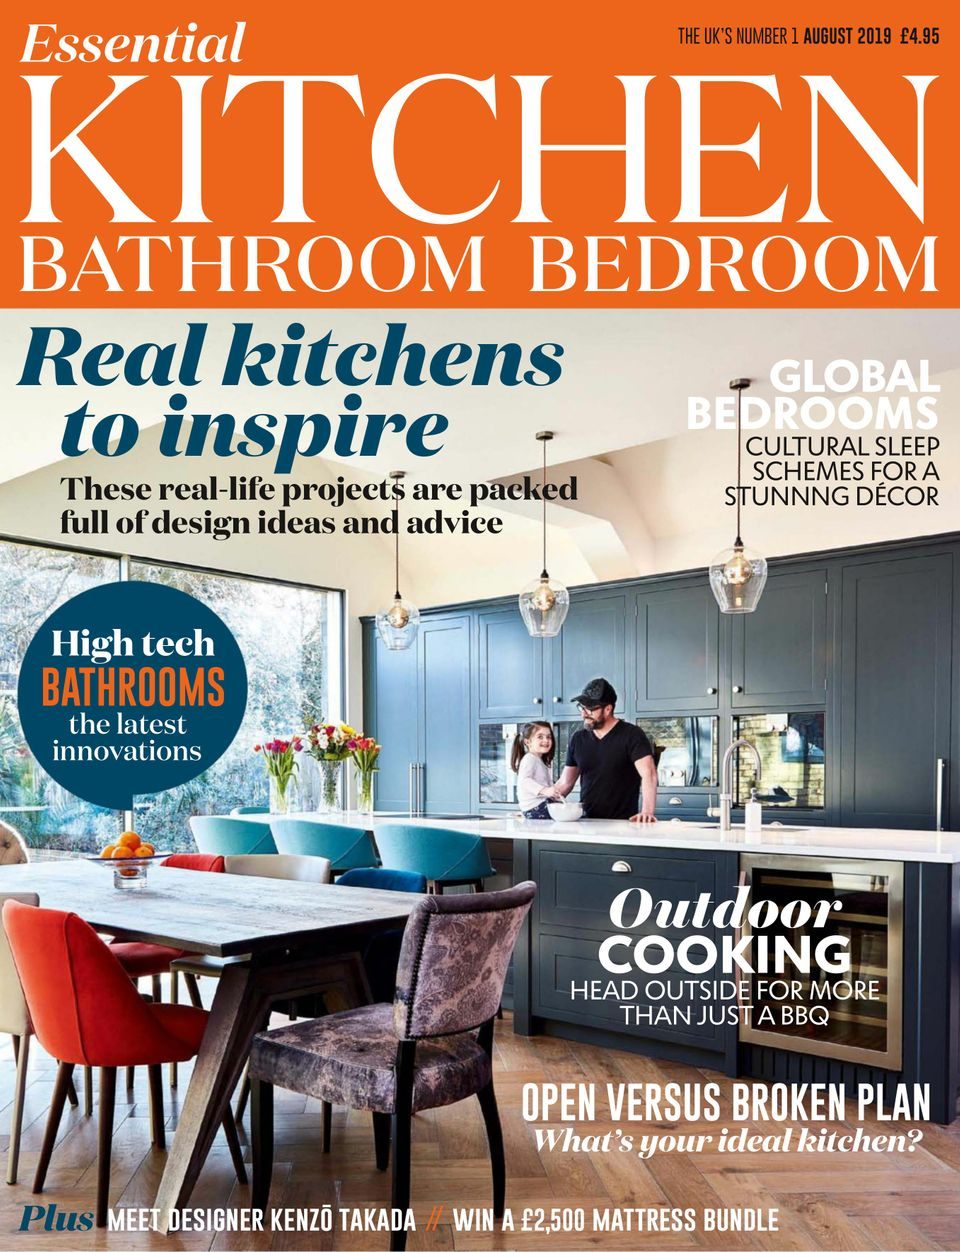 Get Your Digital Copy Of Essential Kitchen Bathroom Bedroom